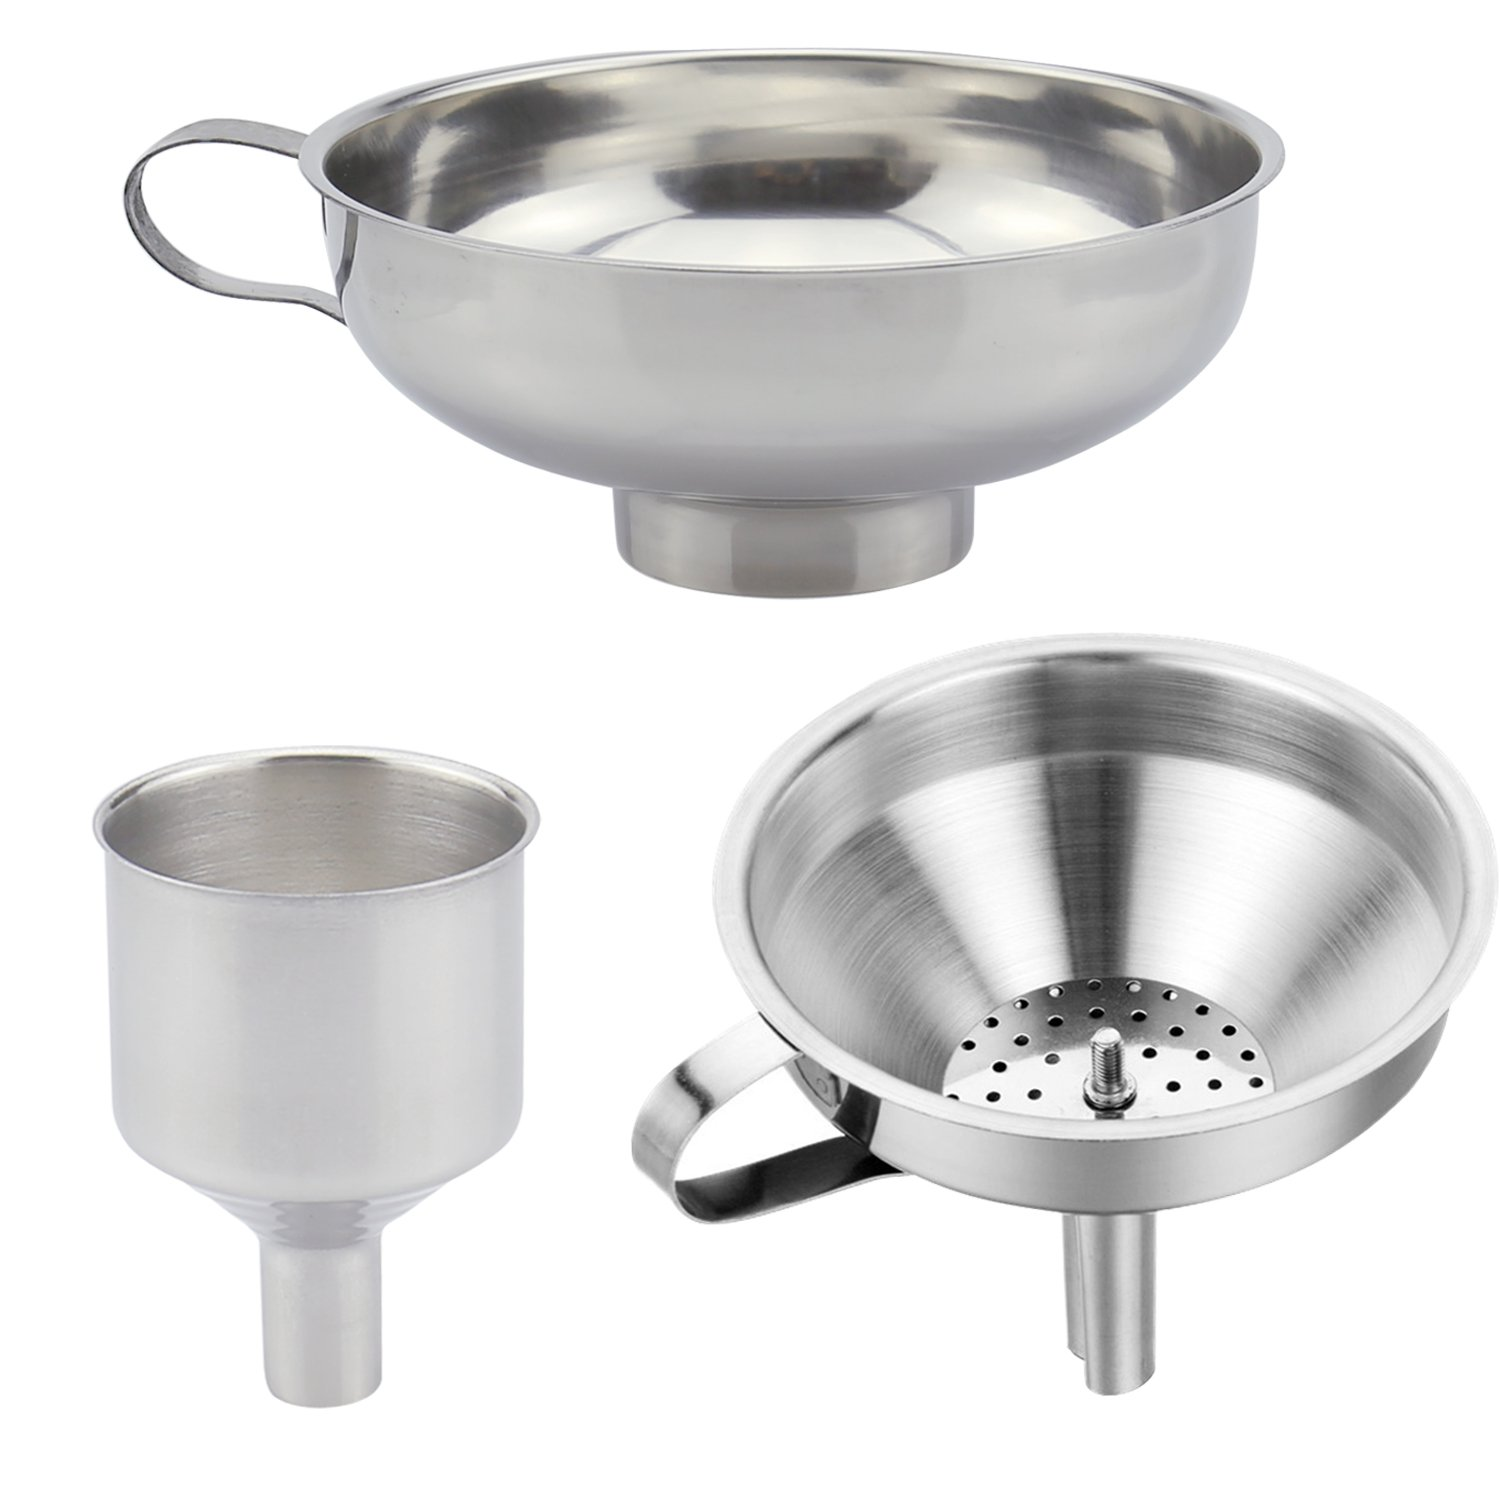 3 Pieces Funnel Durable Stainless Steel Kitchen Funnels with Strainer-Ideal for Transferring of Spices Liquid Powder Bean jam Canning Dishwasher Safe Funnels Set by Techfeed